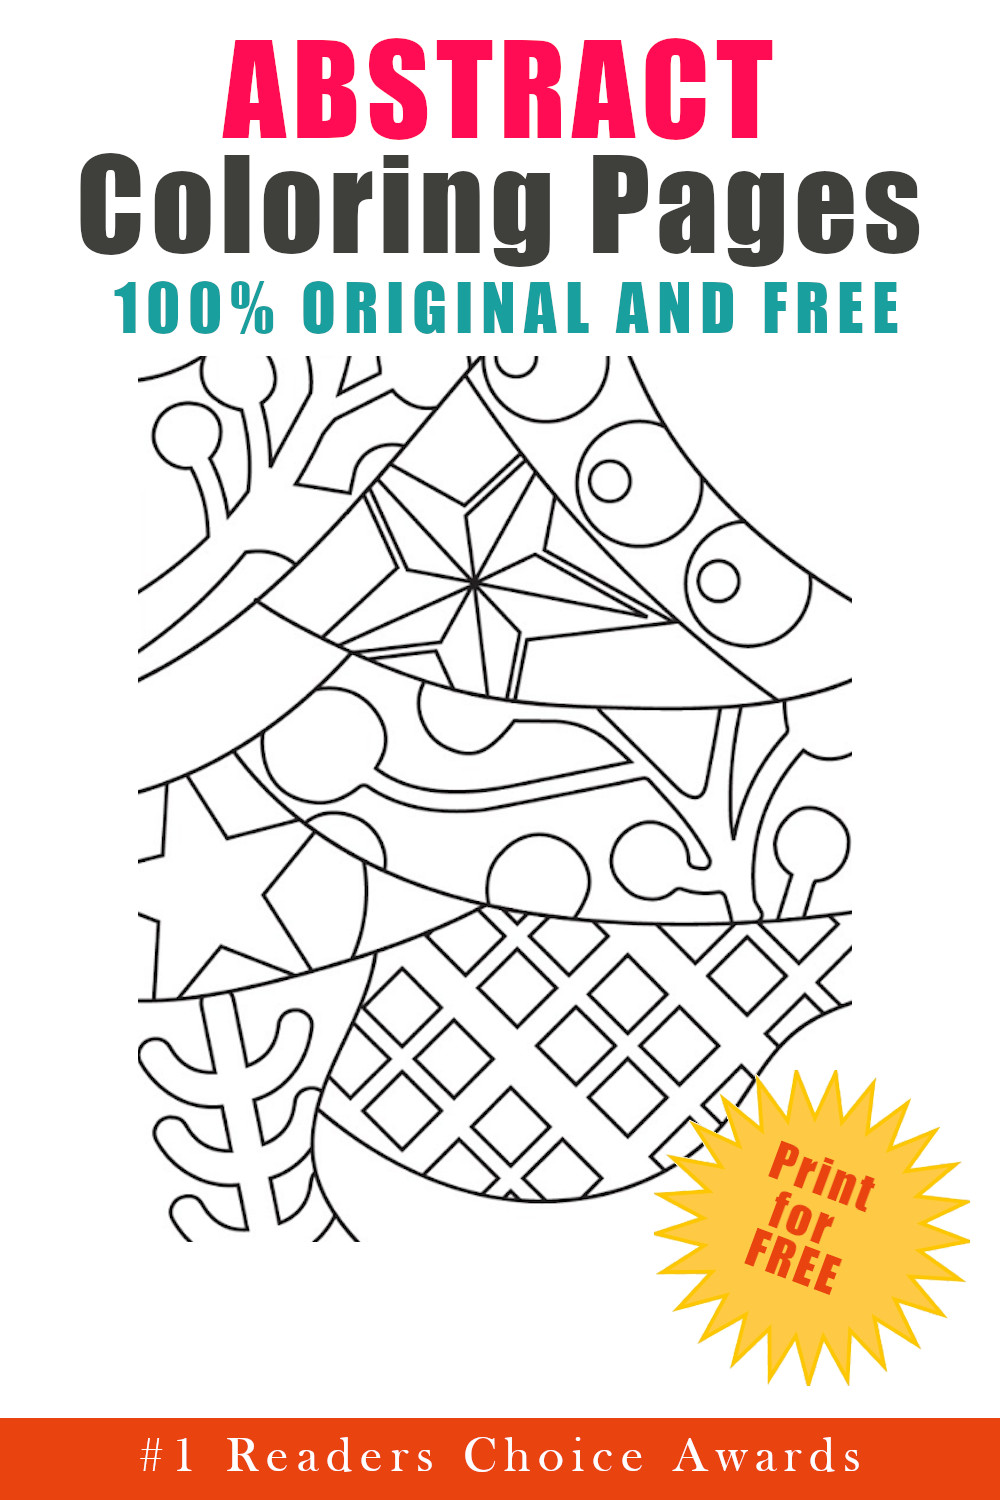 original and free abstract coloring pages